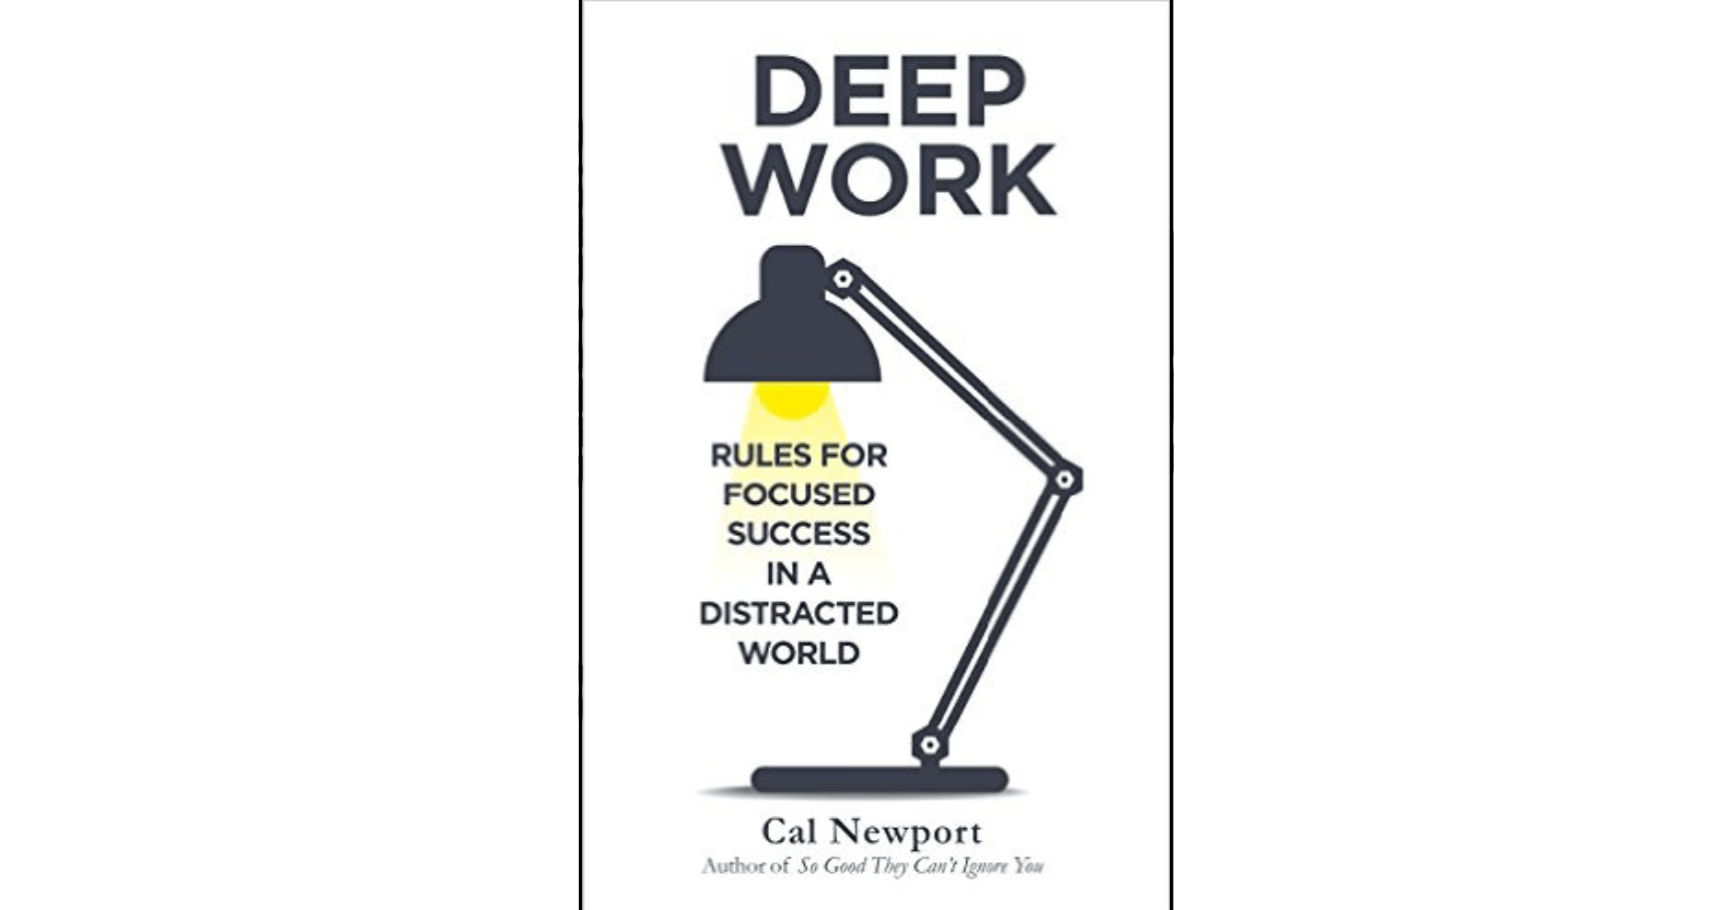 Is deep work the most underappreciated skill for career